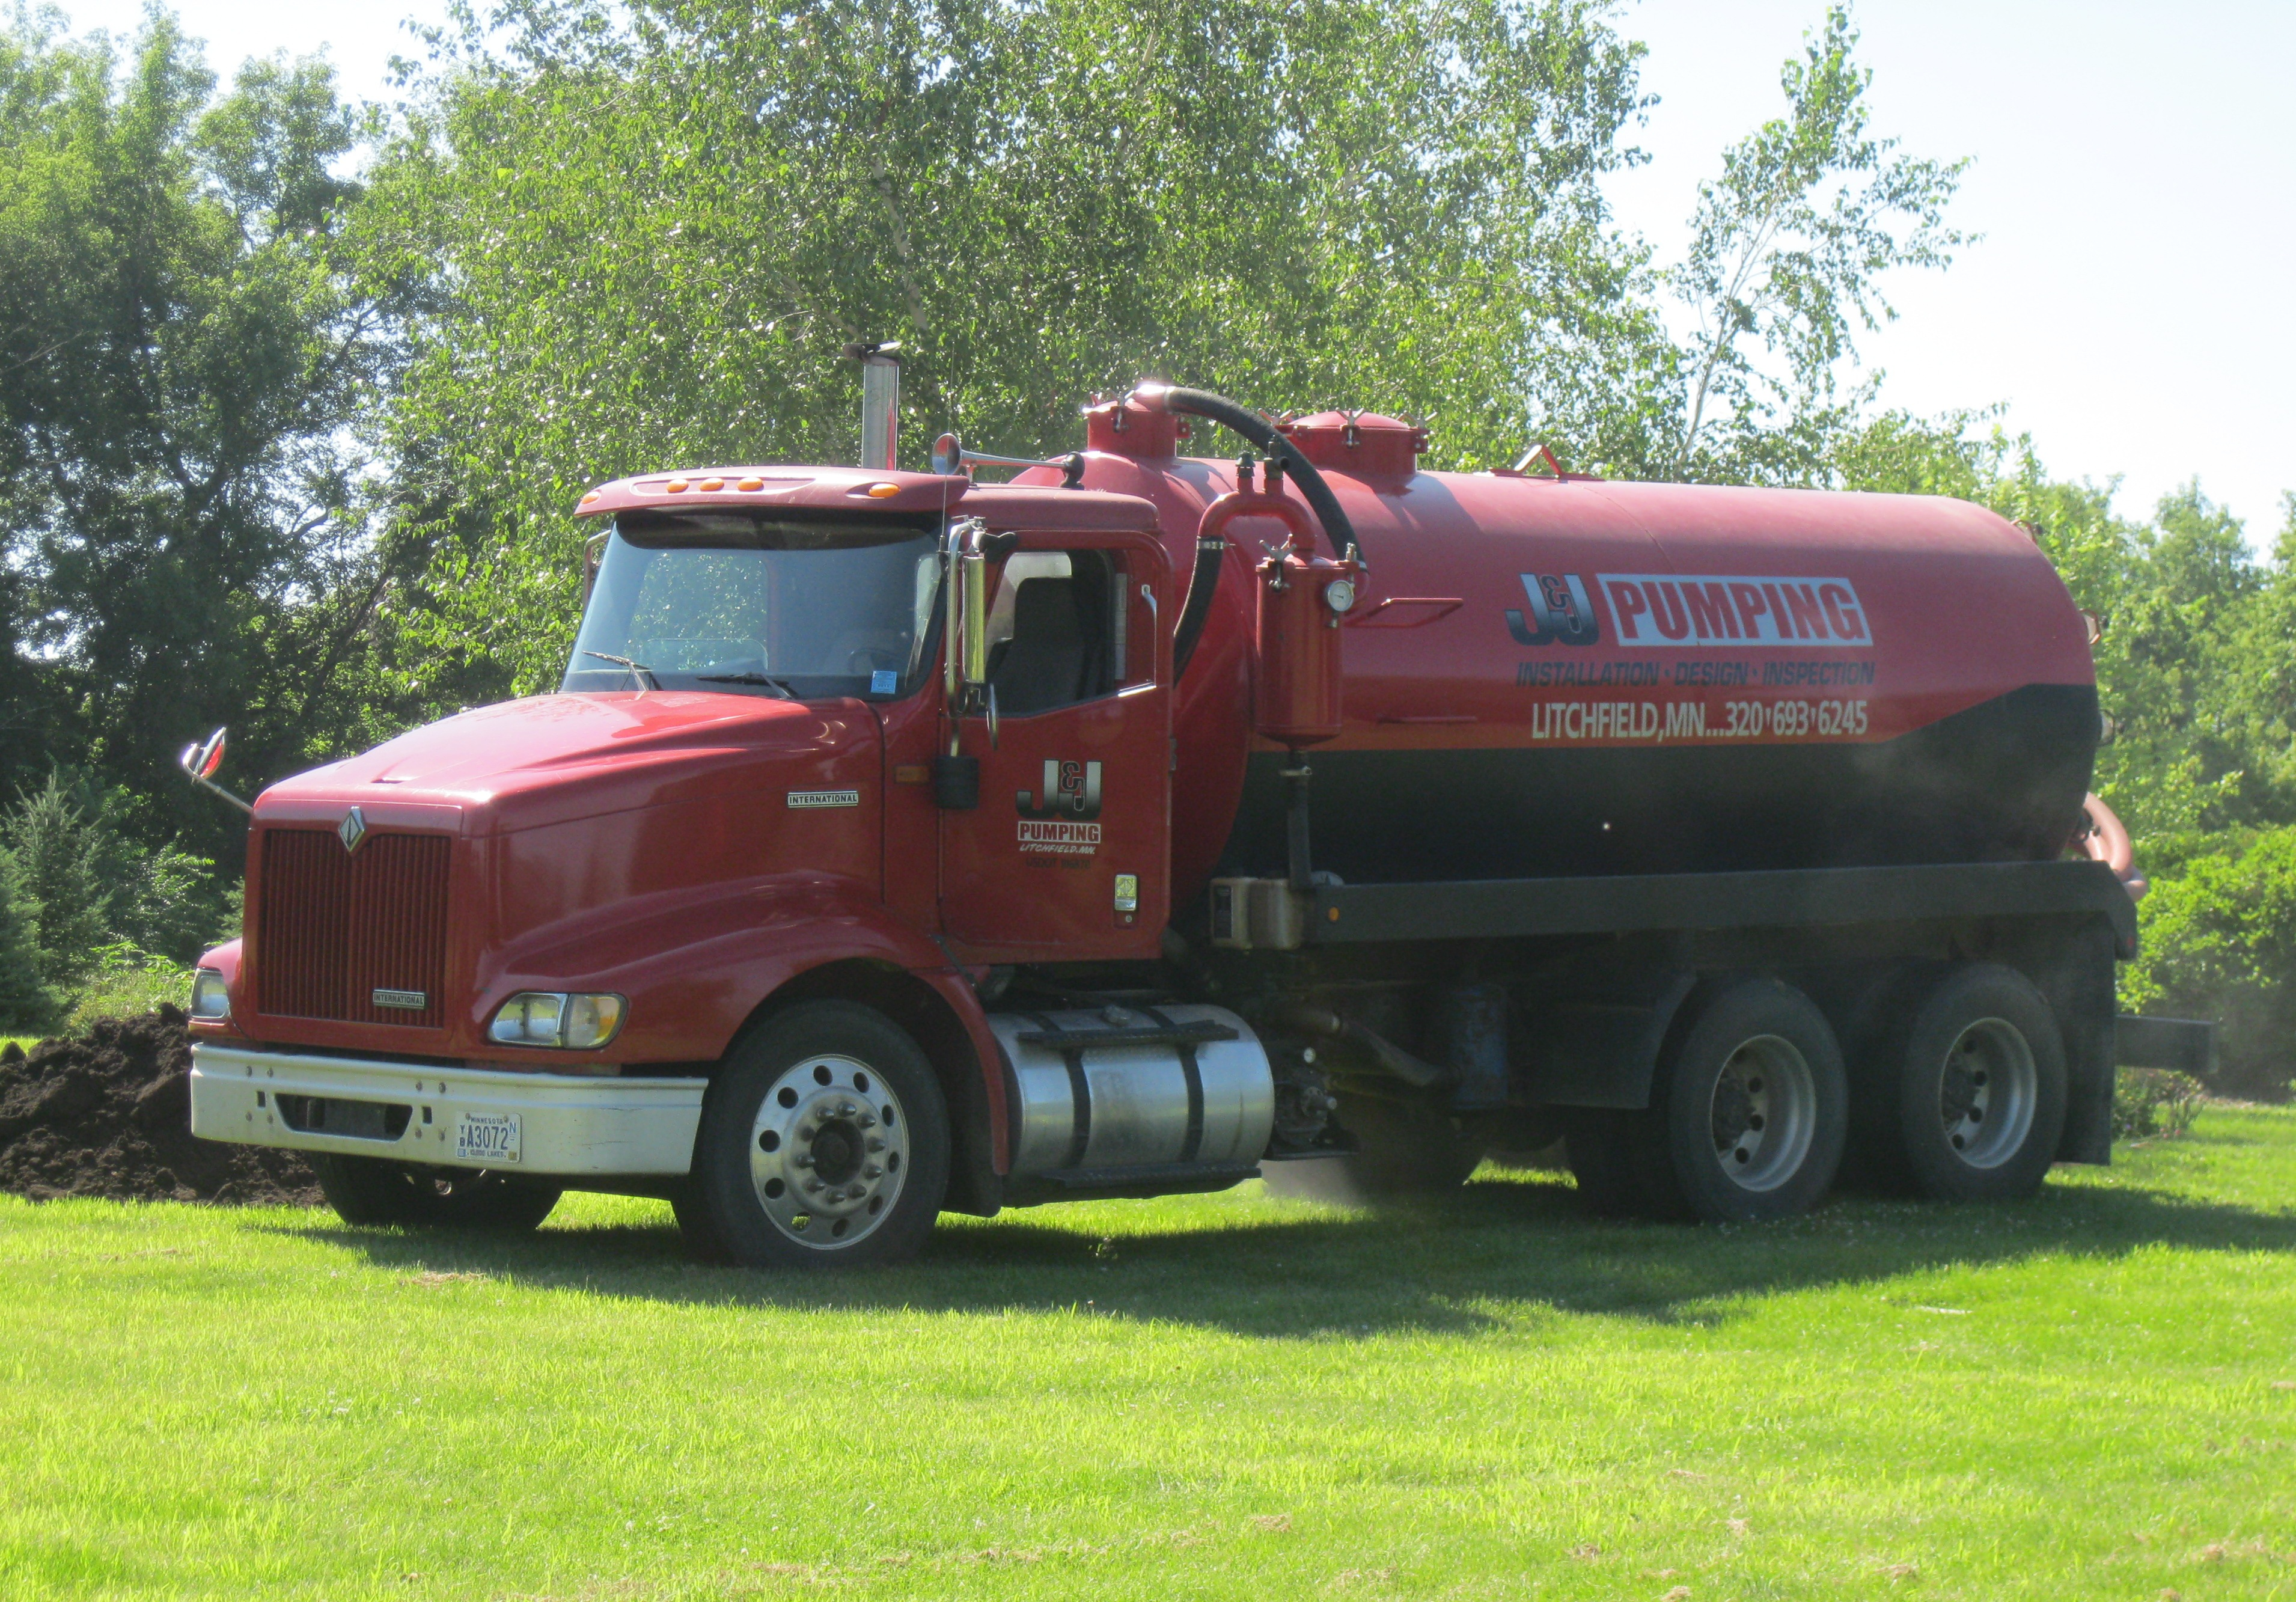 Septic System Pumping Truck